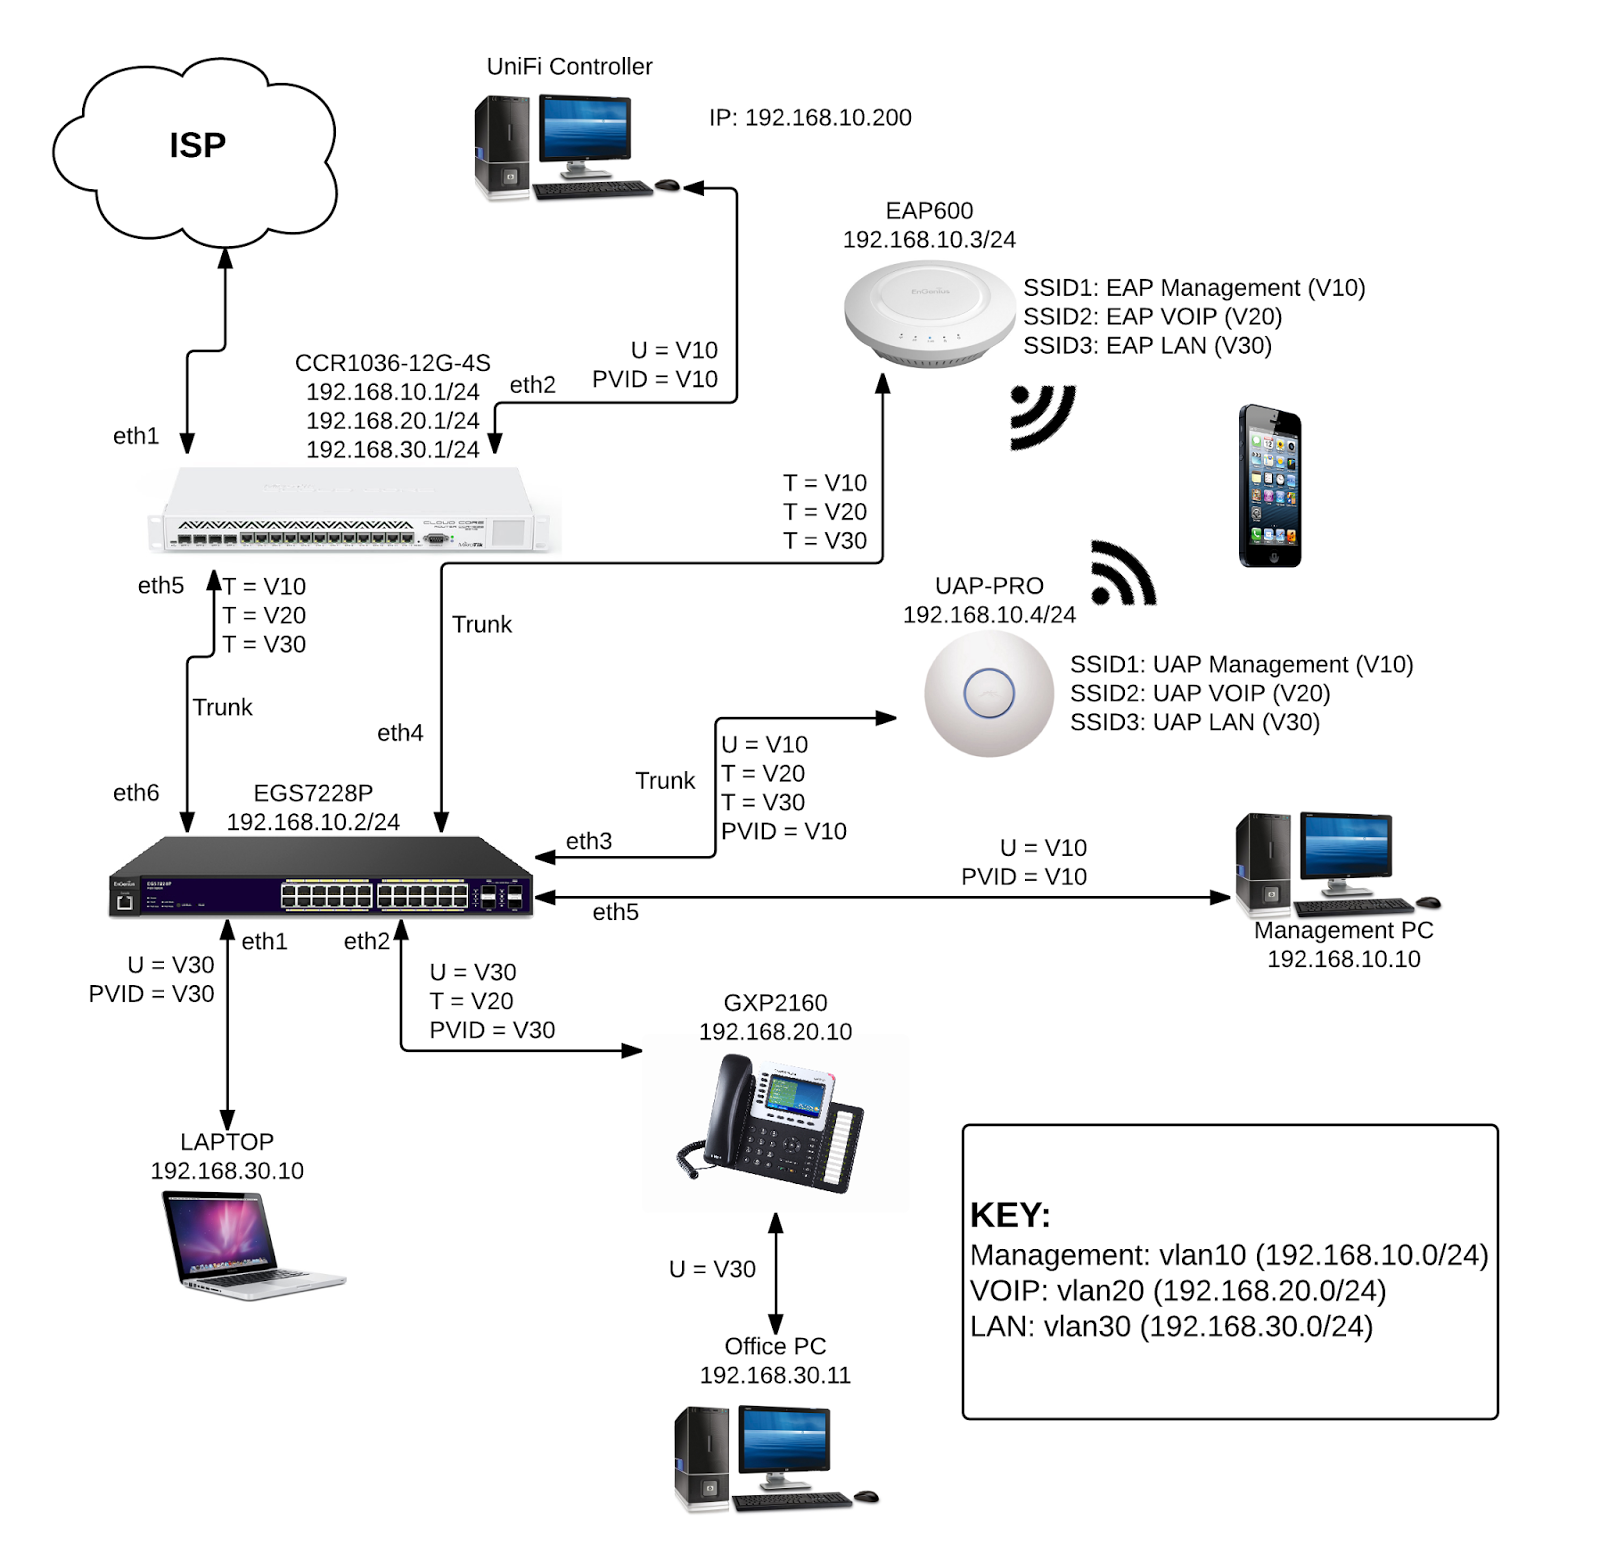 hight resolution of create 3 bridges management voip lan 2 create 3 vlans ether5 10 ether5 20 ether5 30 under ether5 interface 3 setup each bridge with its own ip